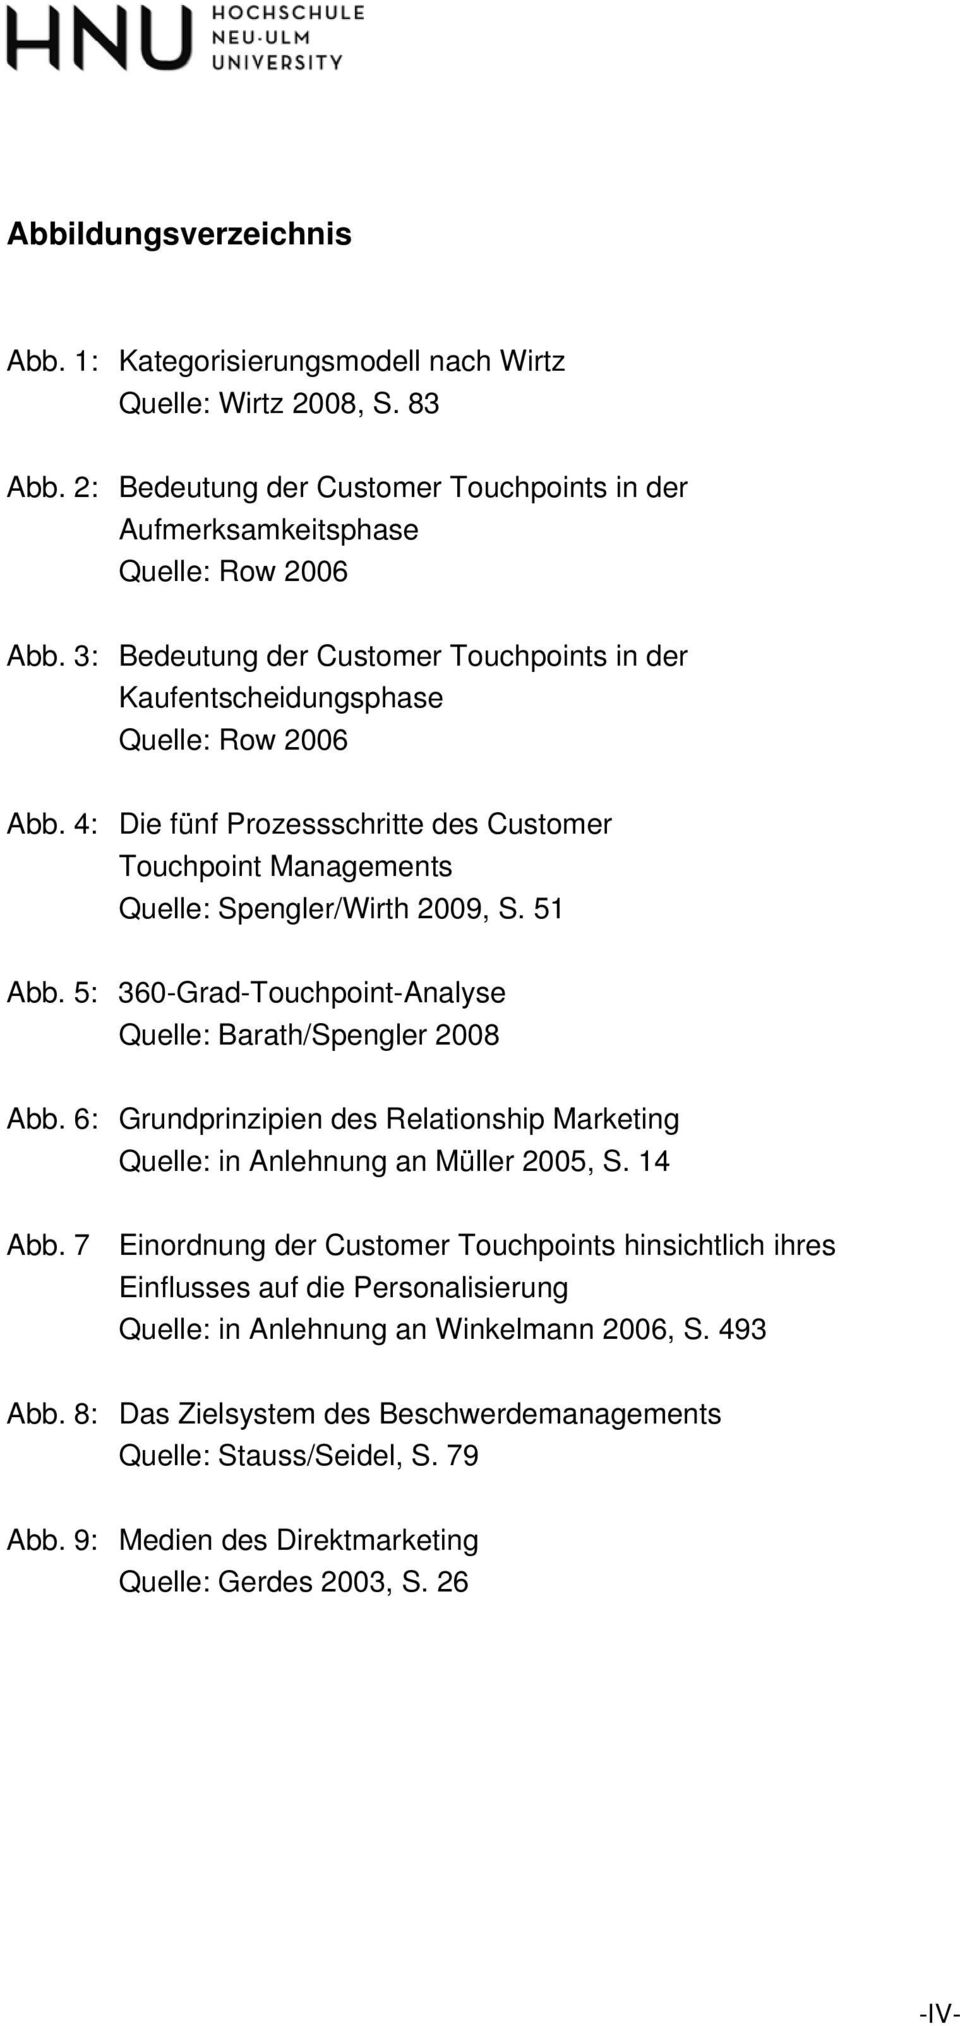 5: 360-Grad-Touchpoint-Analyse Quelle: Barath/Spengler 2008 Abb. 6: Grundprinzipien des Relationship Marketing Quelle: in Anlehnung an Müller 2005, S. 14 Abb.